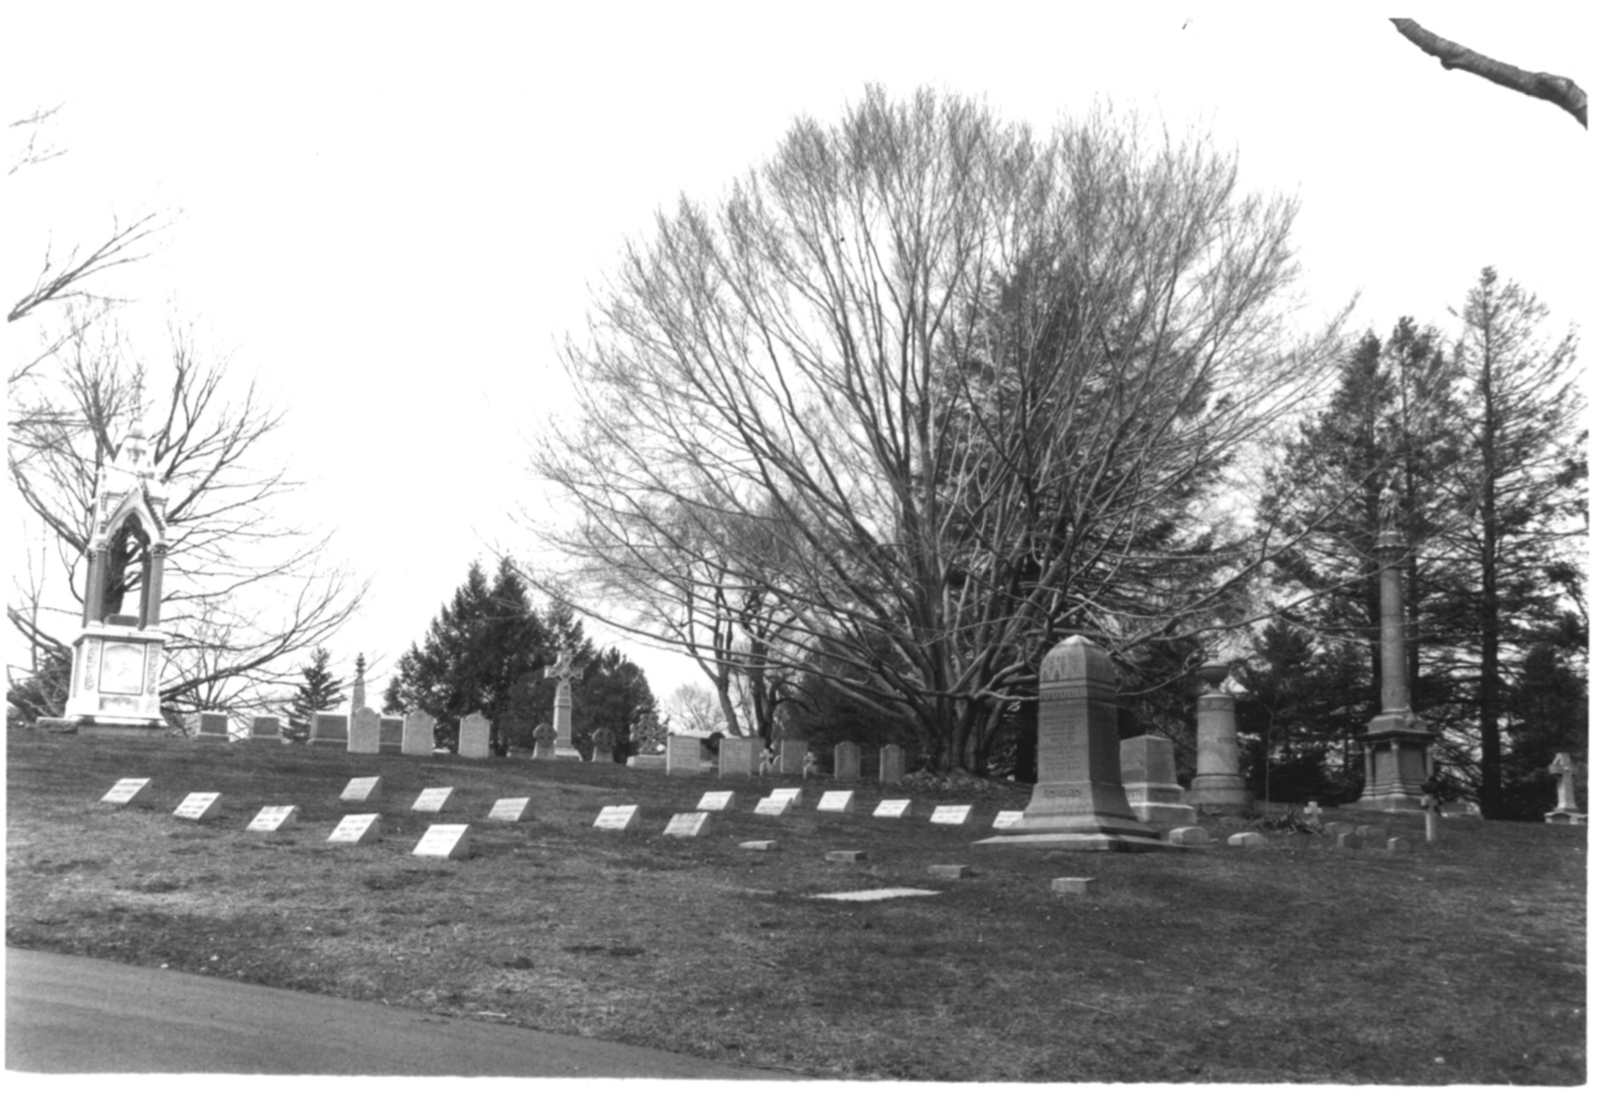 1997 NPS Photo Record of Cedar Hill Cemetary #9